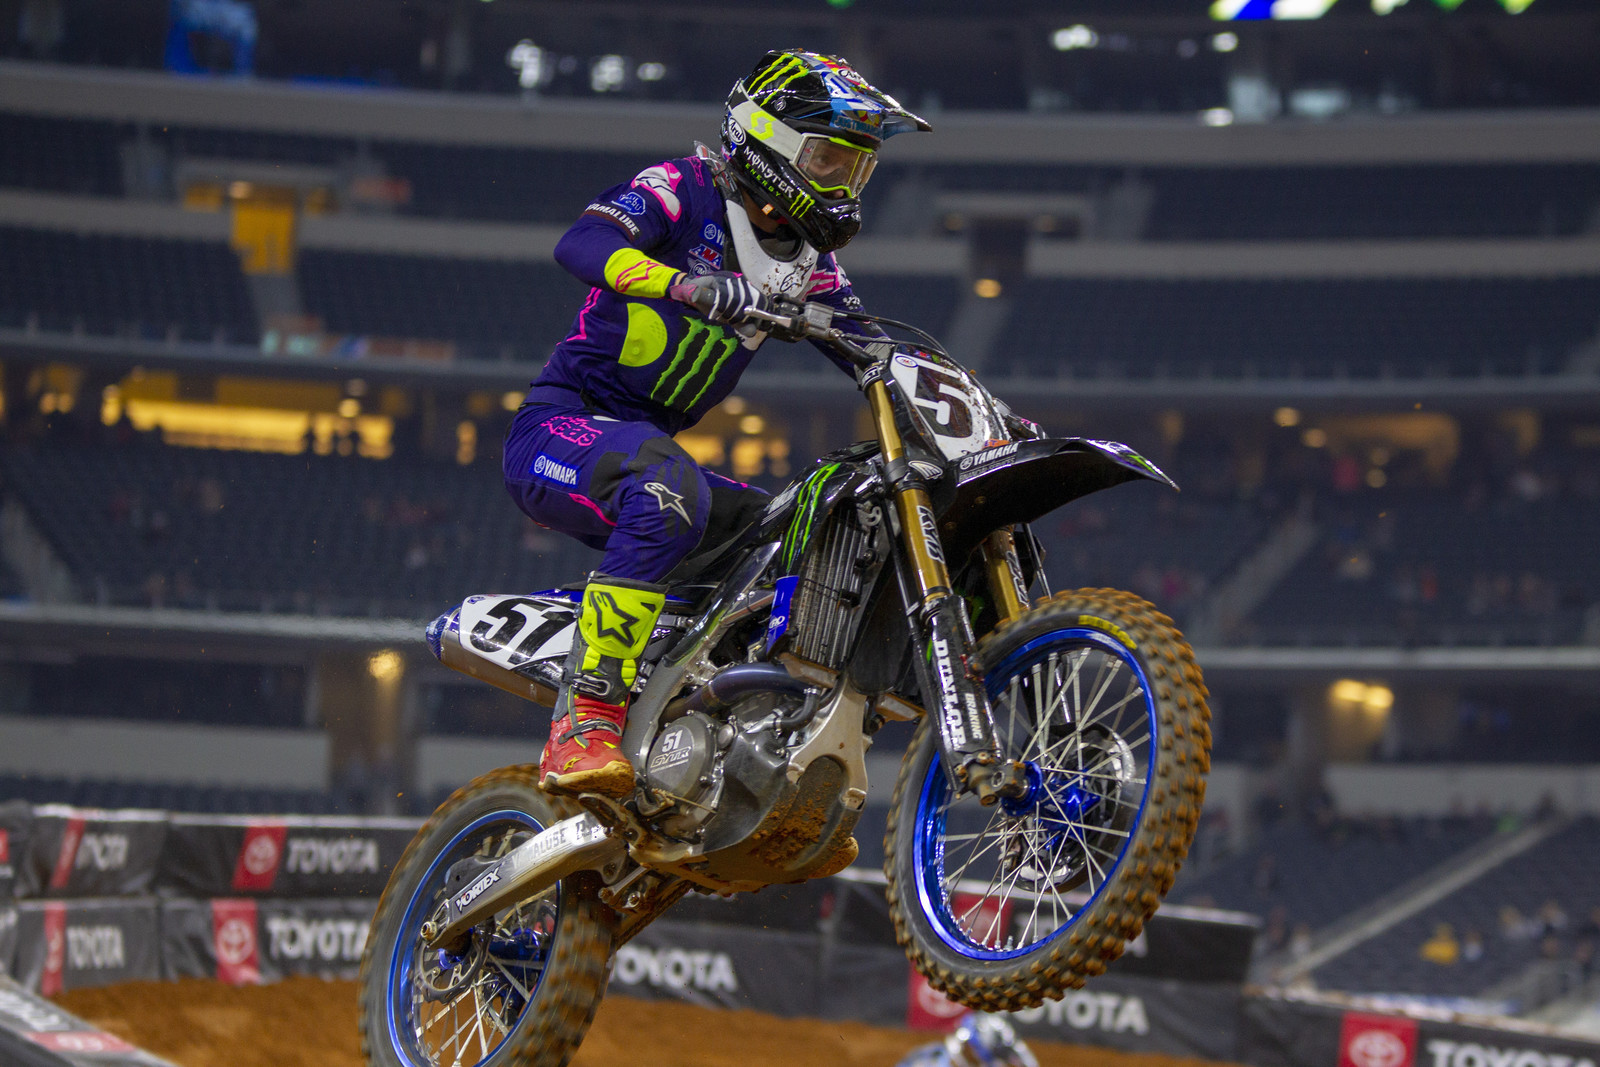 Justin Barcia Out for Atlanta Supercross